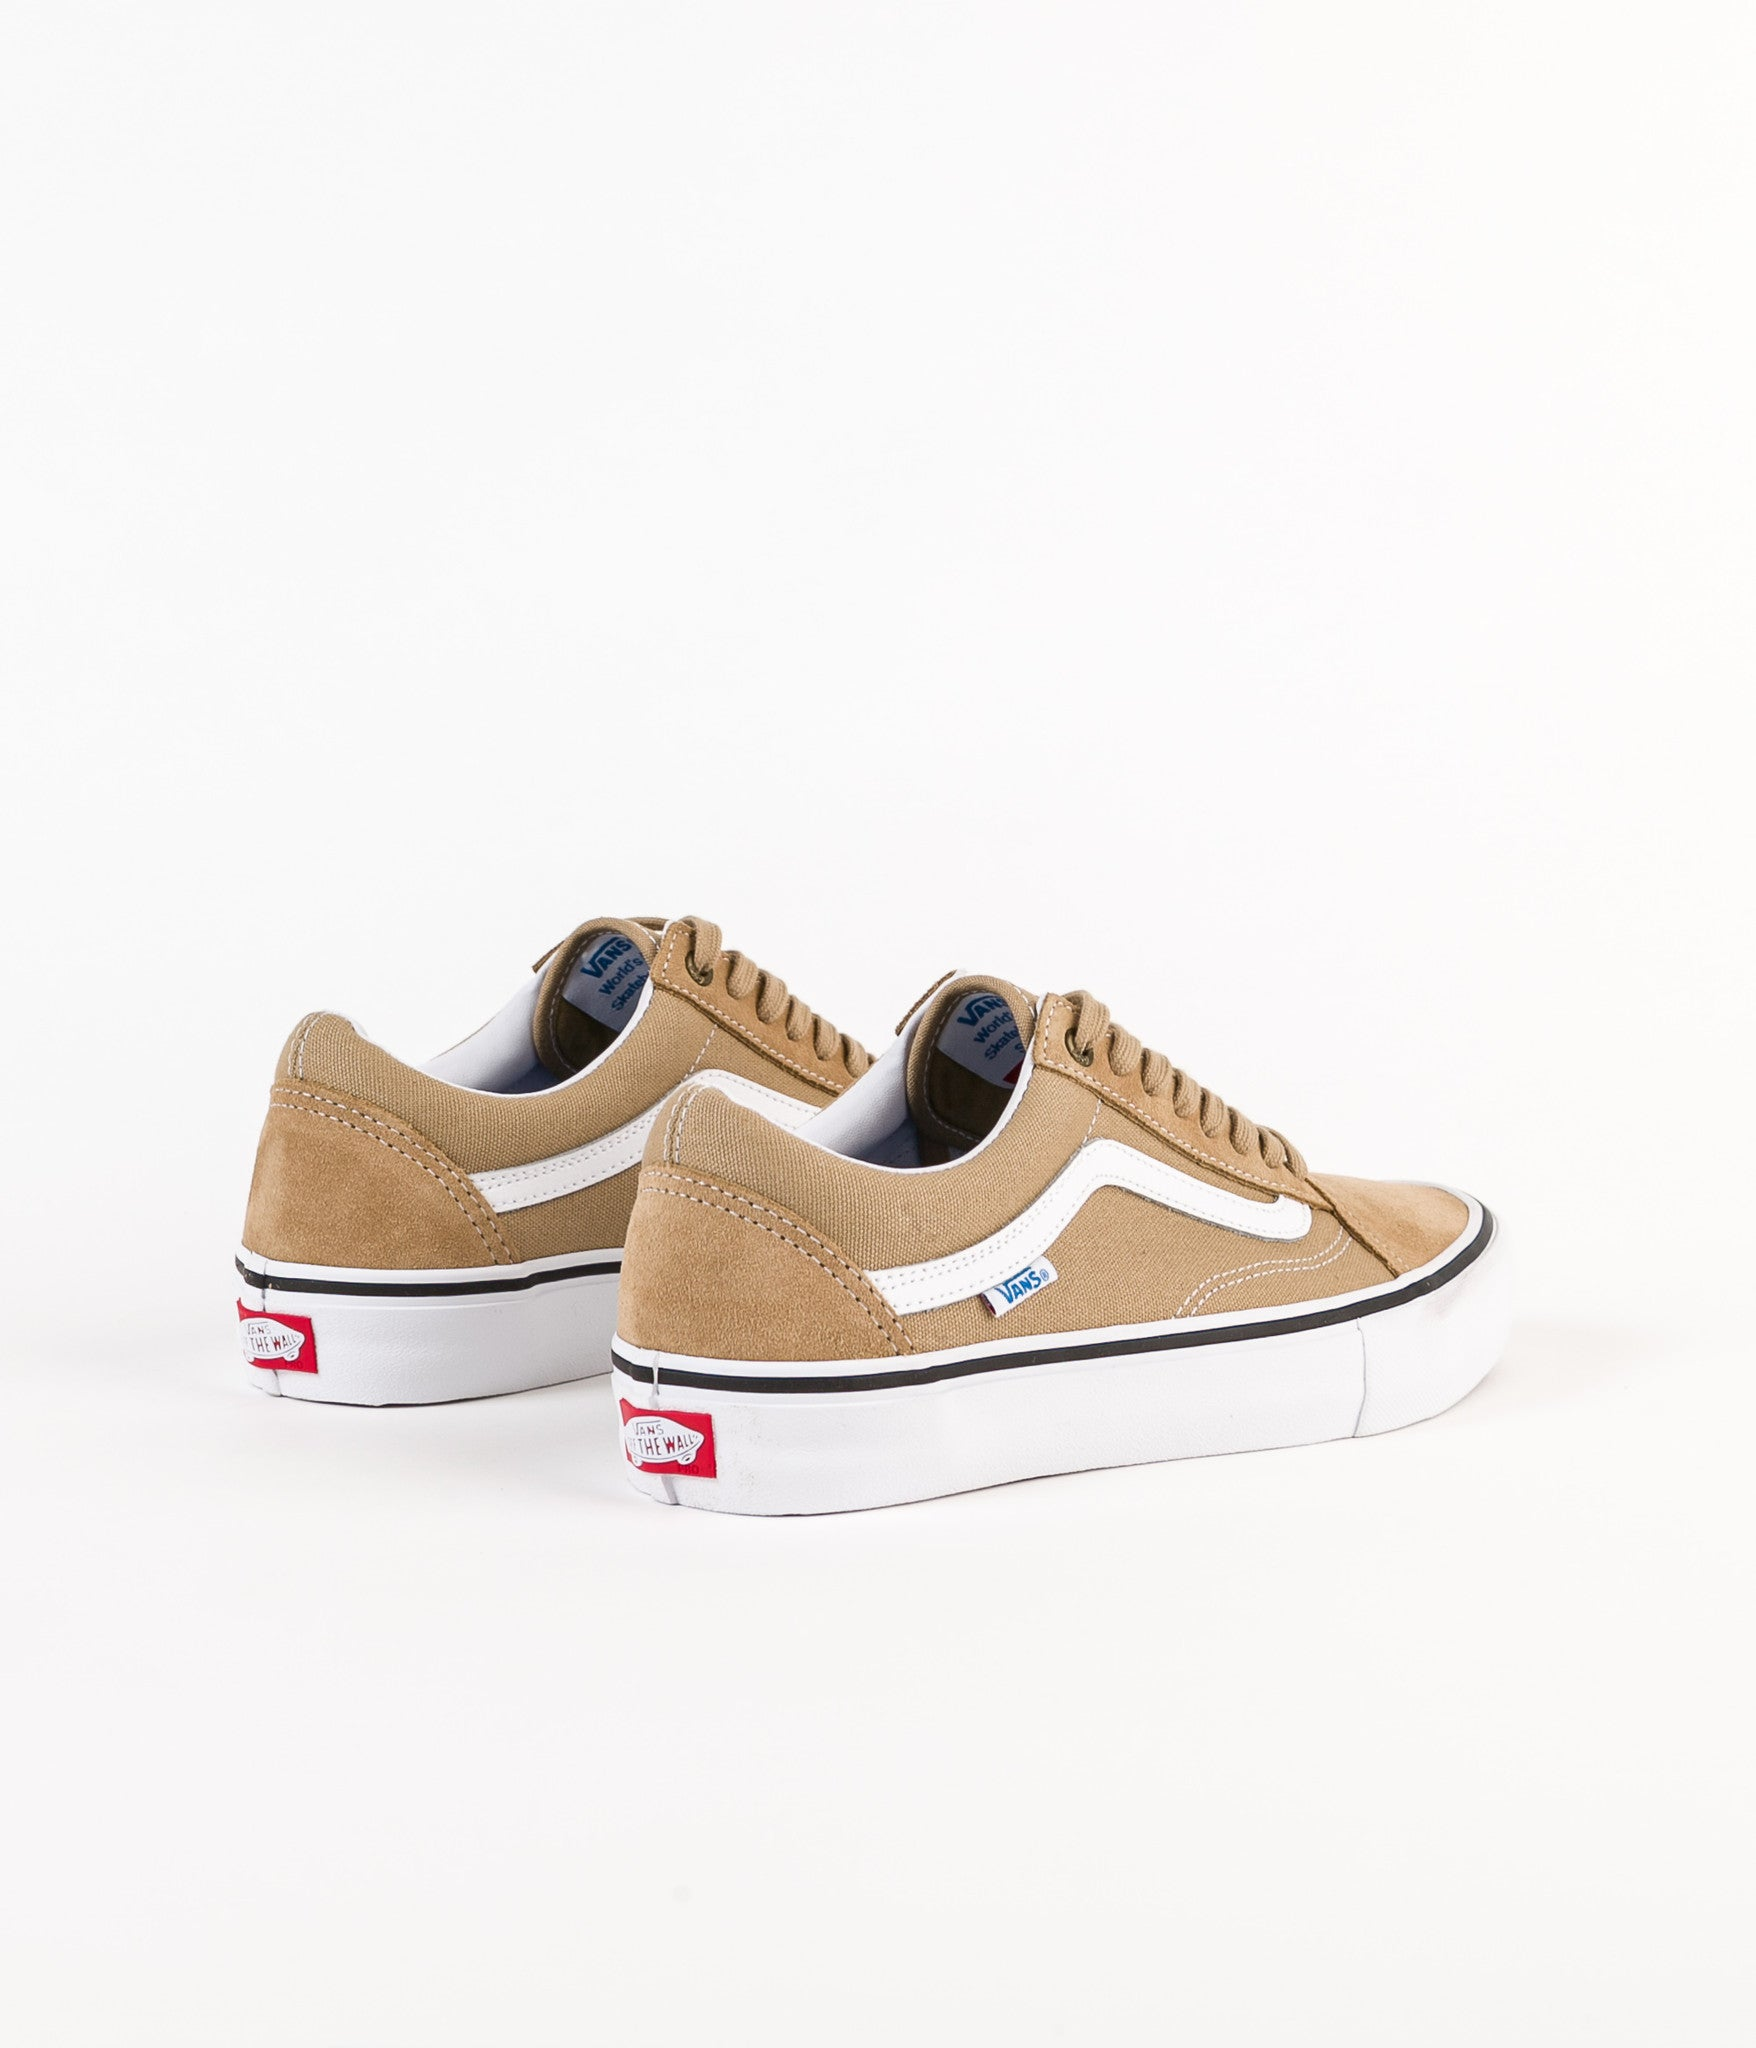 vans old skool pro shoes khaki white flatspot. Black Bedroom Furniture Sets. Home Design Ideas